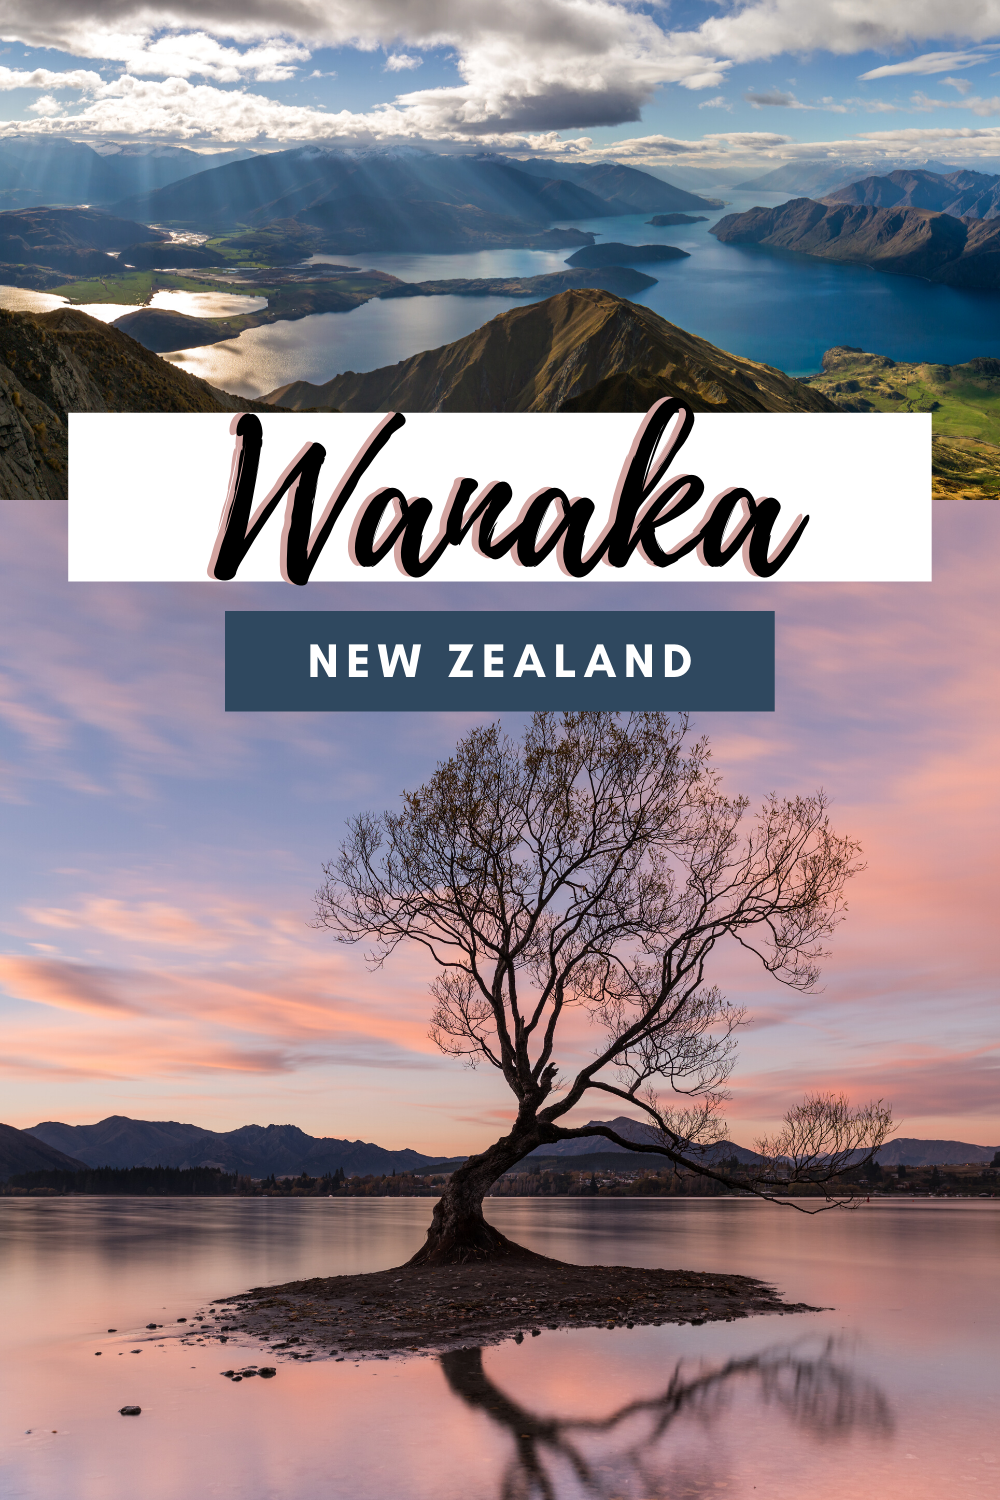 There's more to Wanaka than the famous tree. Make your visit to Wanaka more memorable with this unique things to do in Wanaka | #NewZealand #Travel #Wanaka